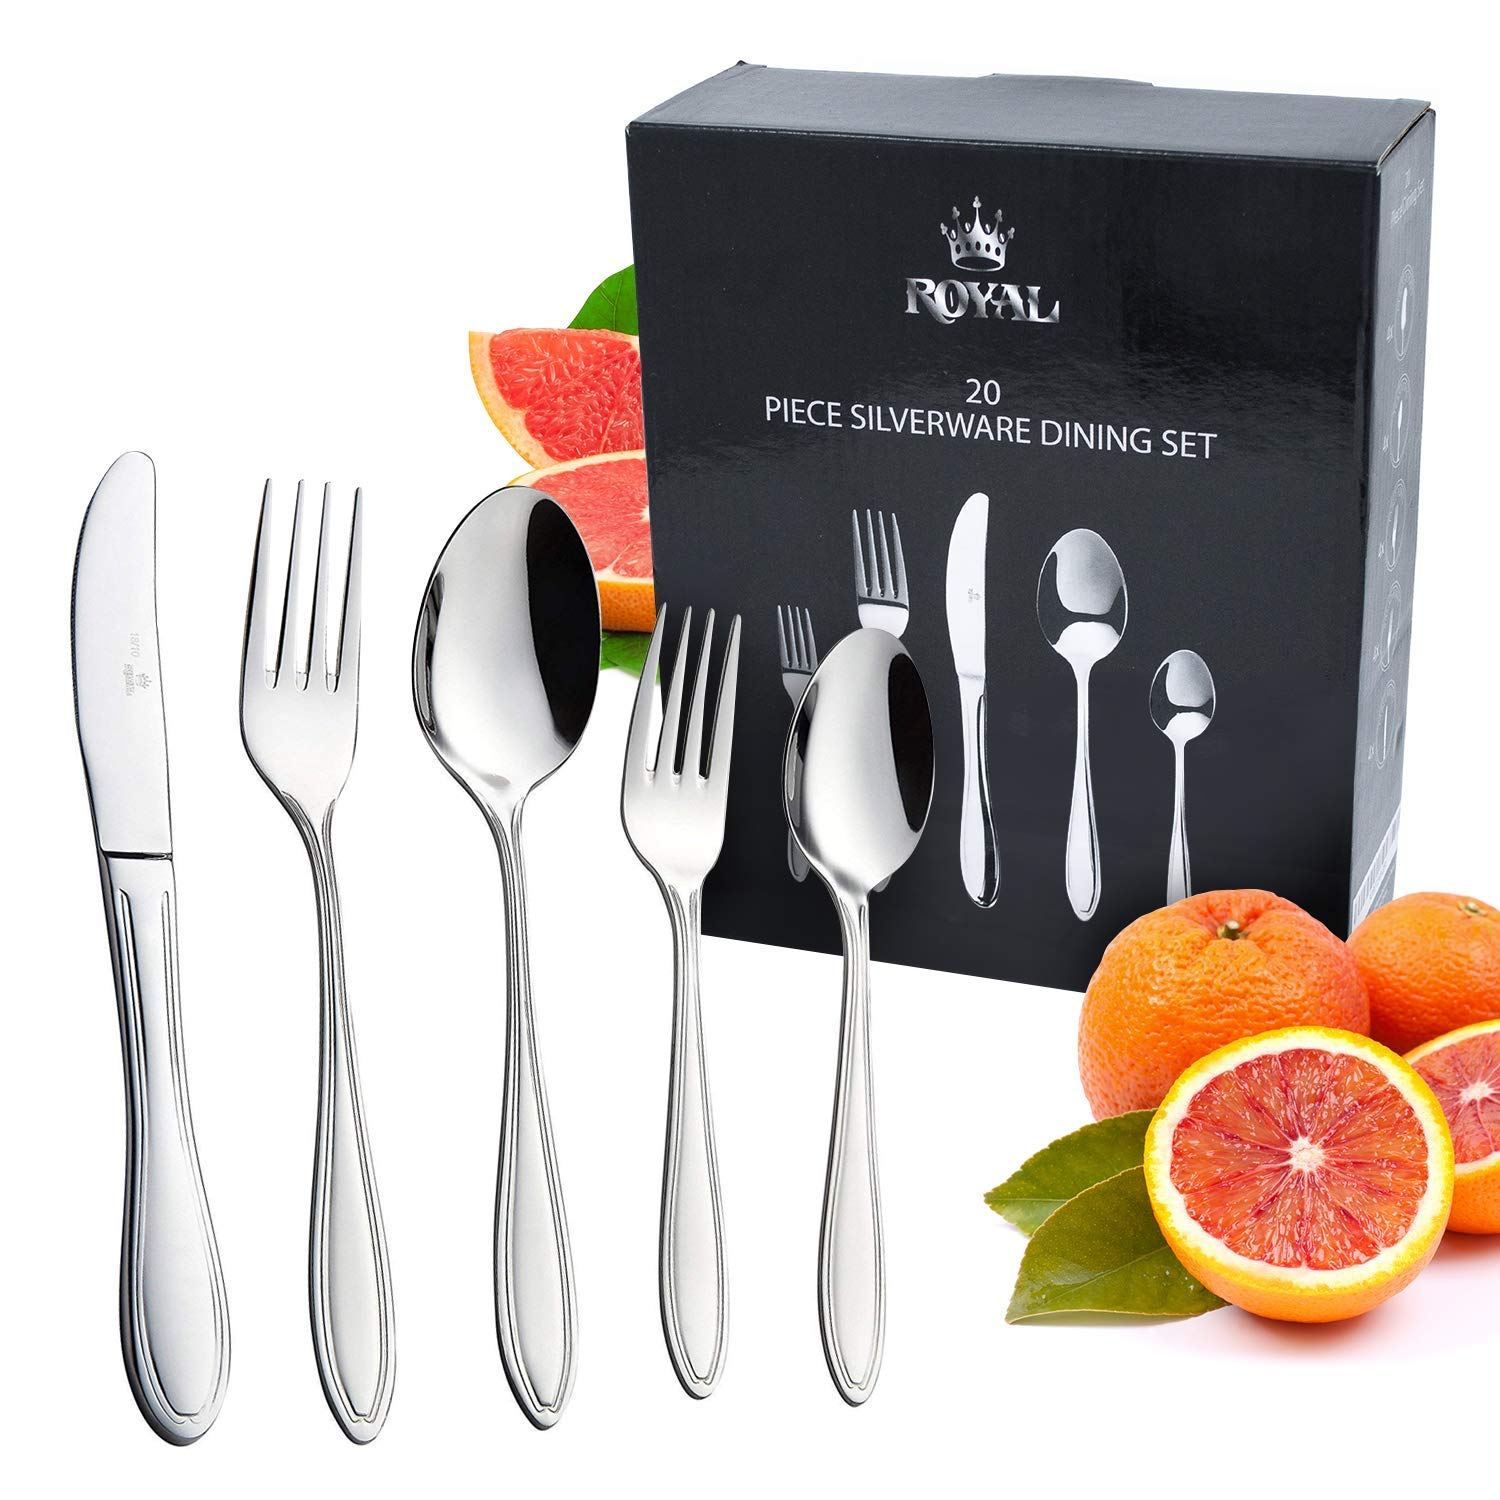 Royal 20-Piece Silverware Set - 18/10 Stainless Steel Utensils Forks Spoons Knives Set, Mirror Polished Cutlery Flatware Set Equinox Int RYL-20PC-B